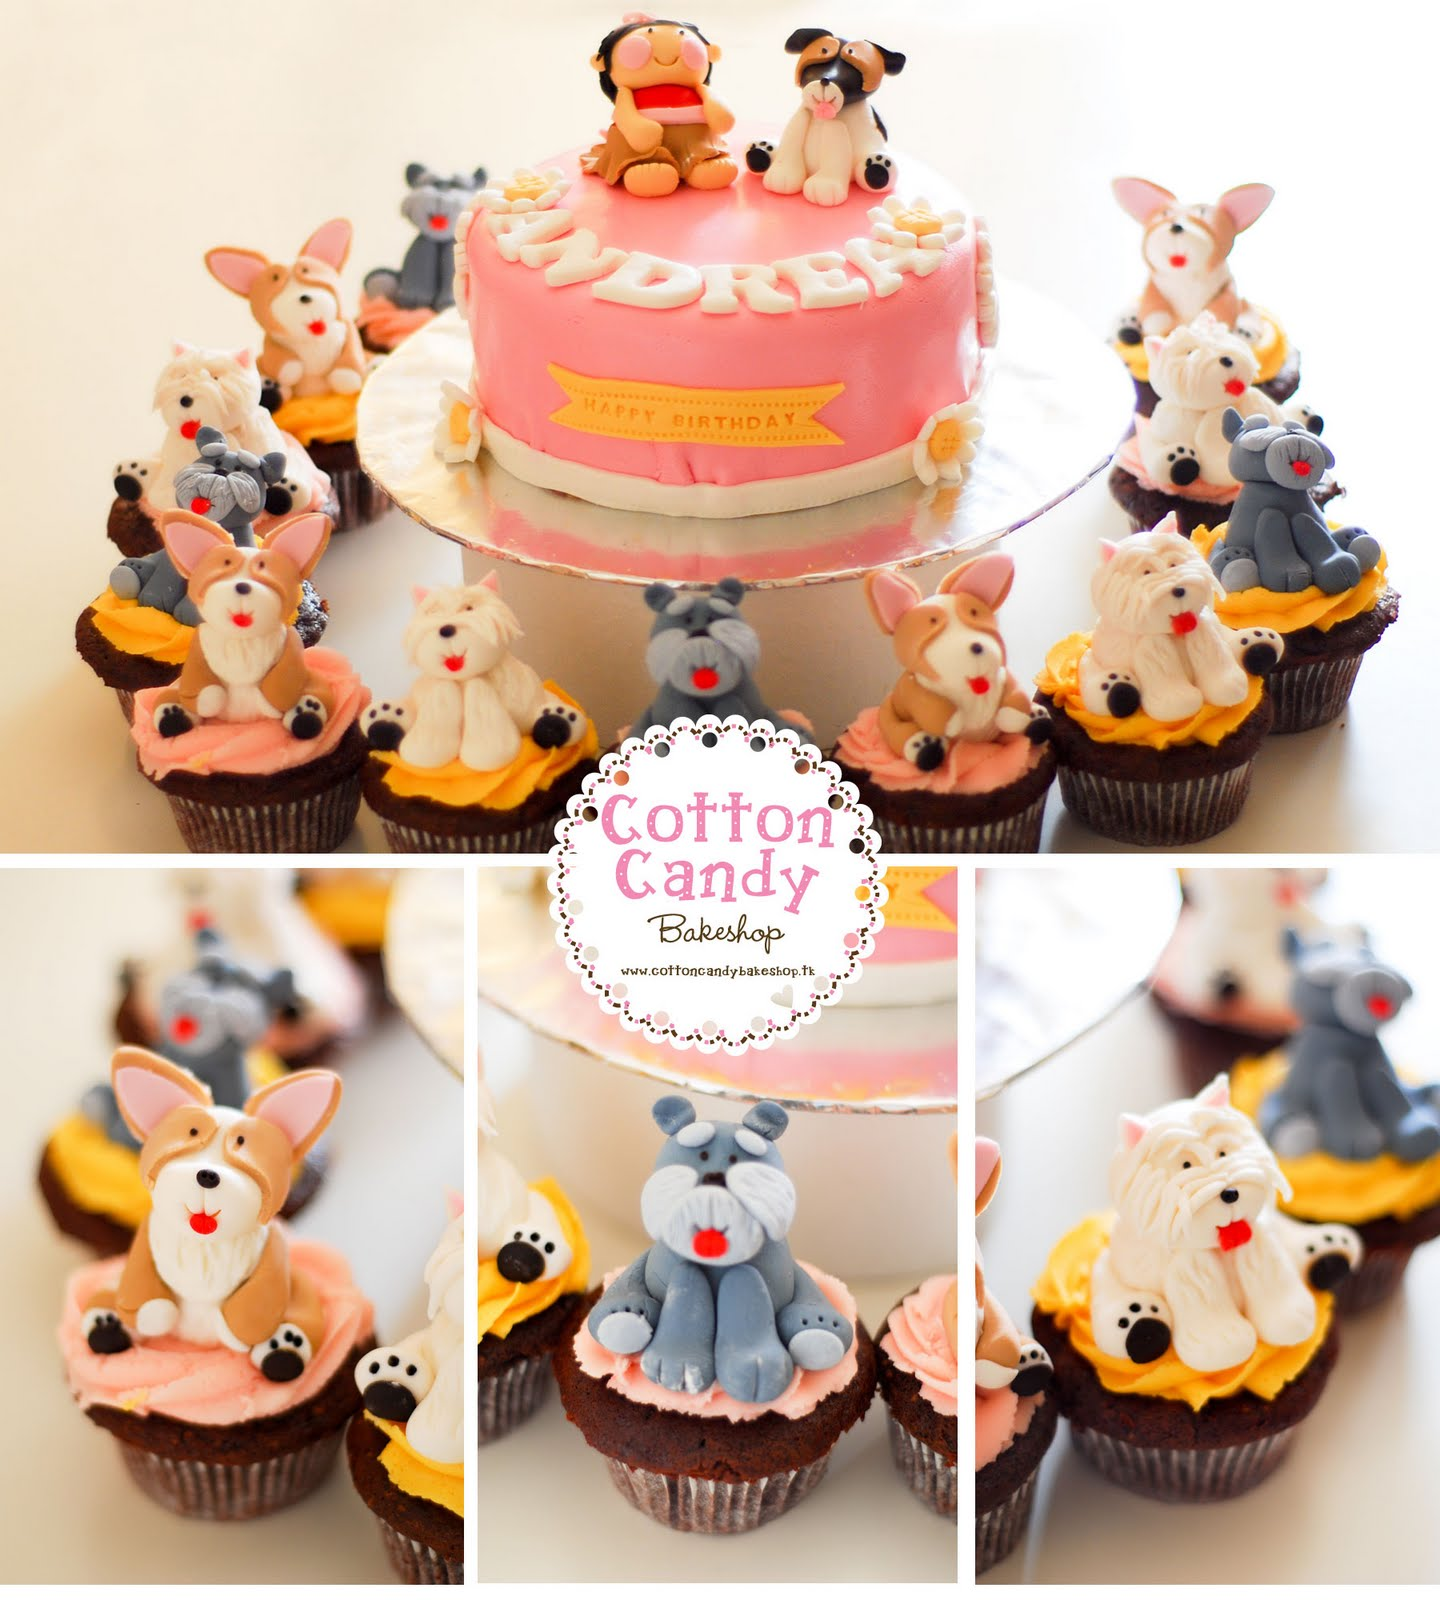 Cotton Candy Bakeshop Doggy Theme First Birthday Cake